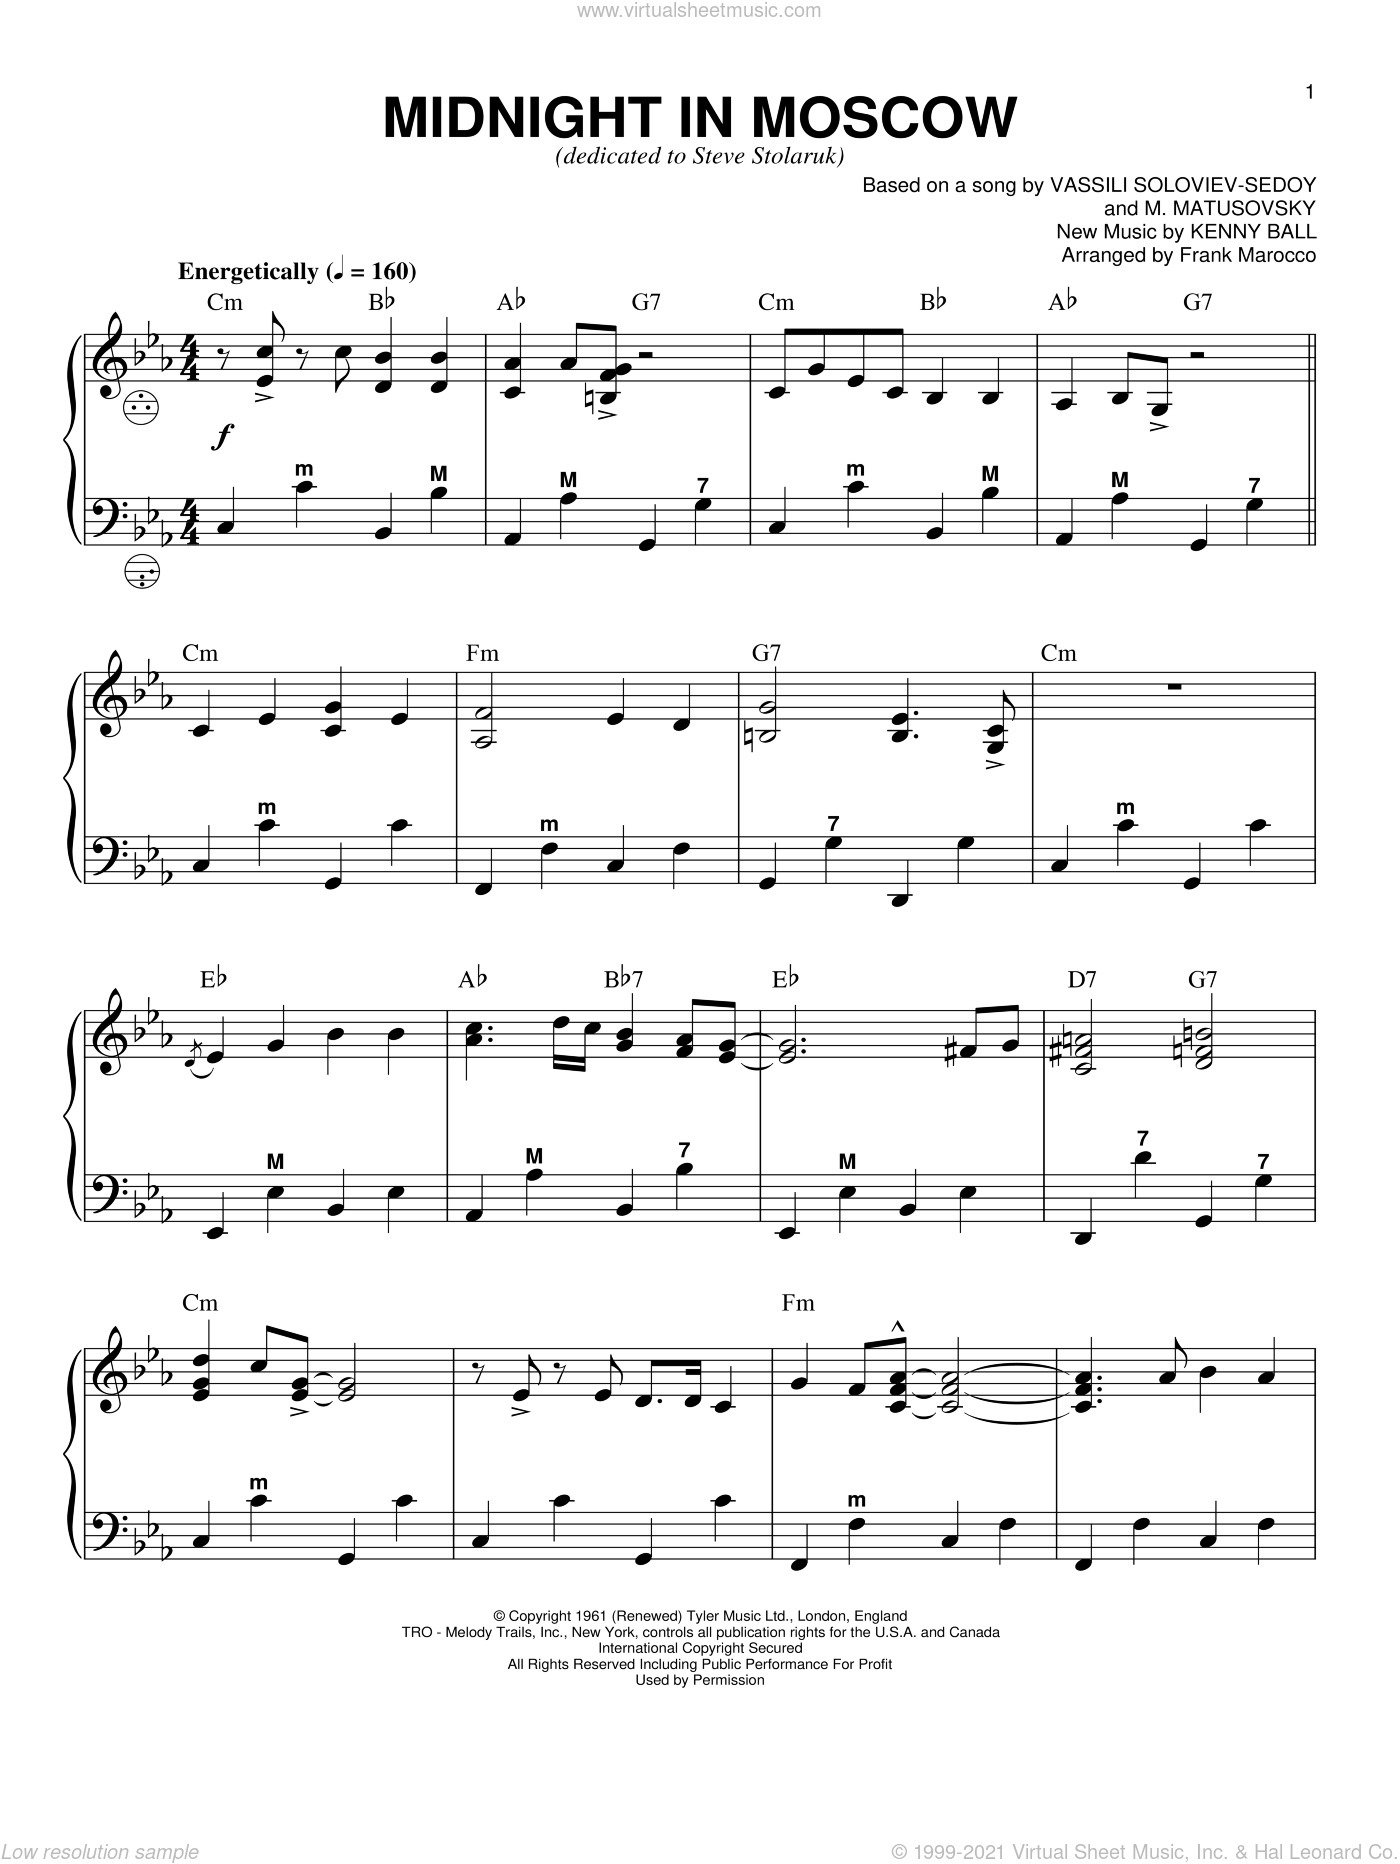 Midnight In Moscow sheet music for accordion by Kenny Ball and Frank Marocco, intermediate skill level